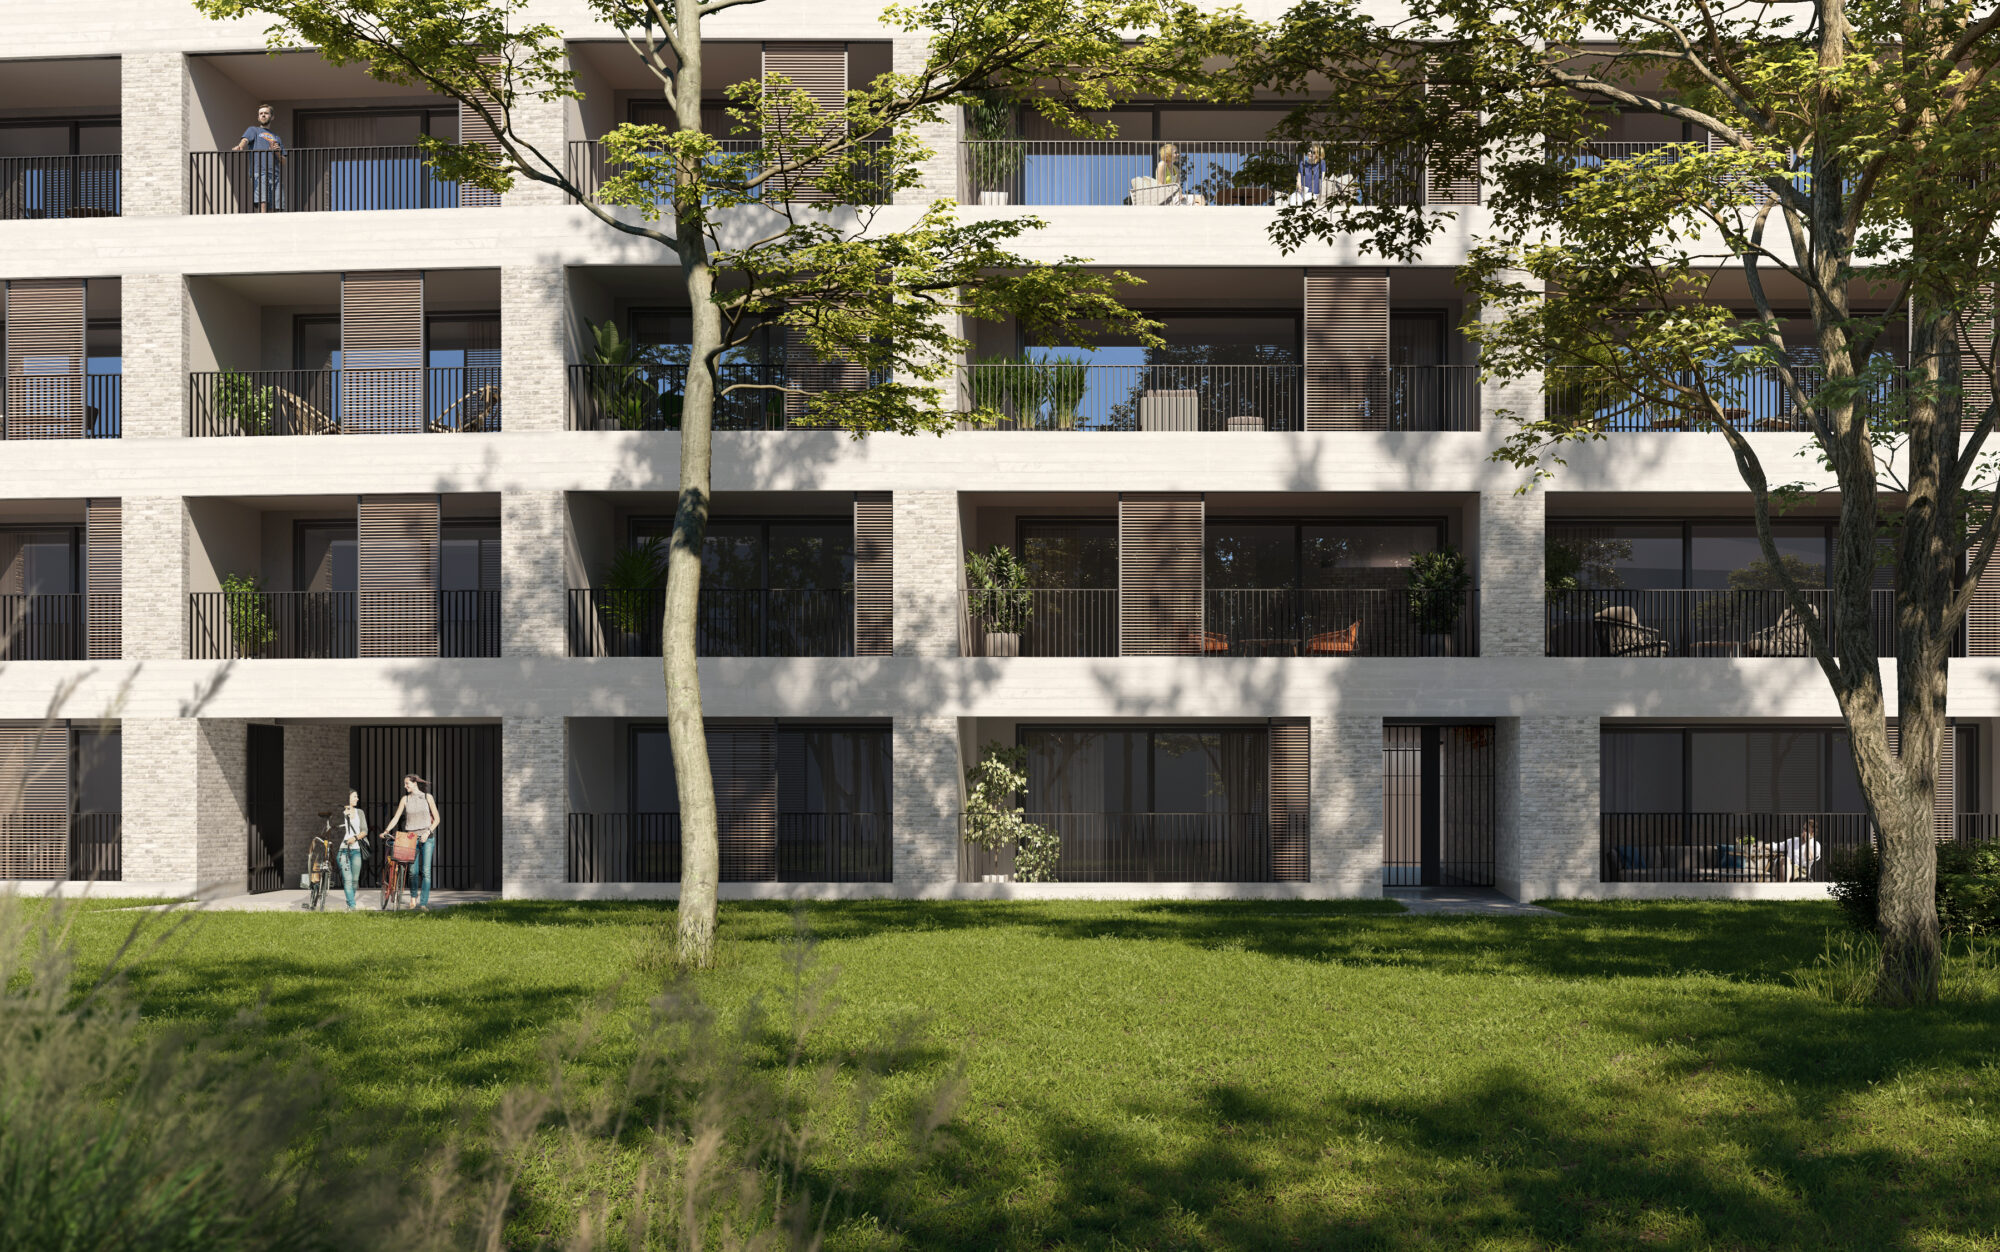 7655 kolmont refuga images exterior A3 City Apartment final